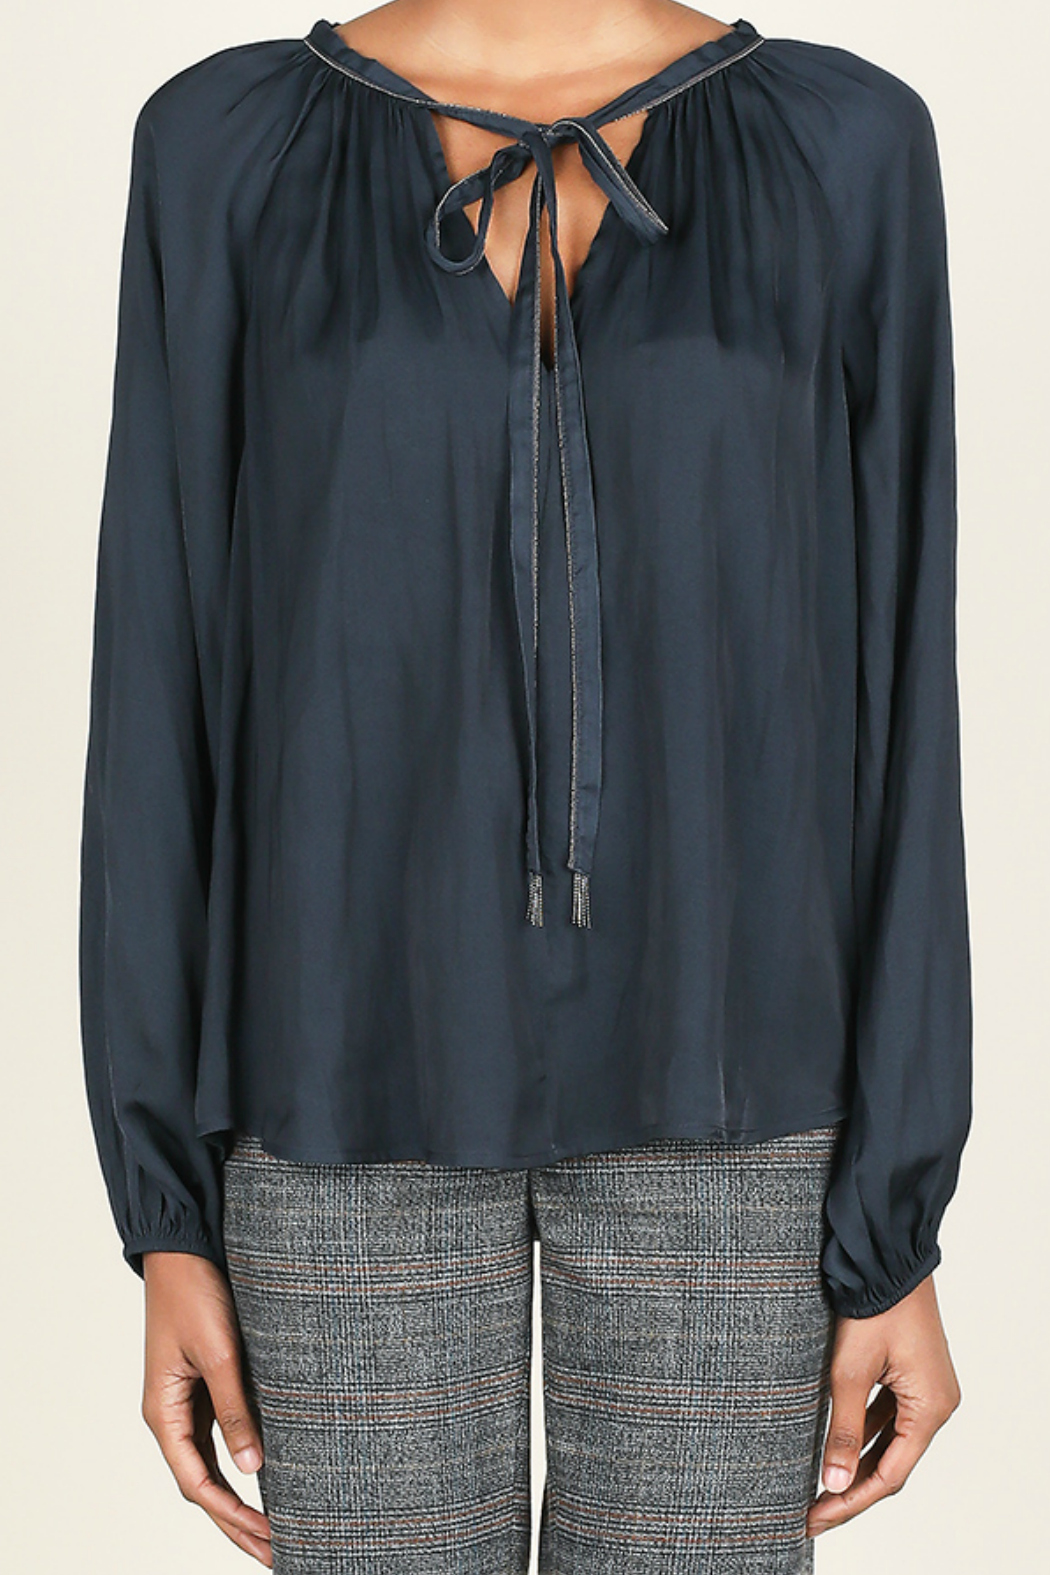 Current Air Tie front blouse - Main Image